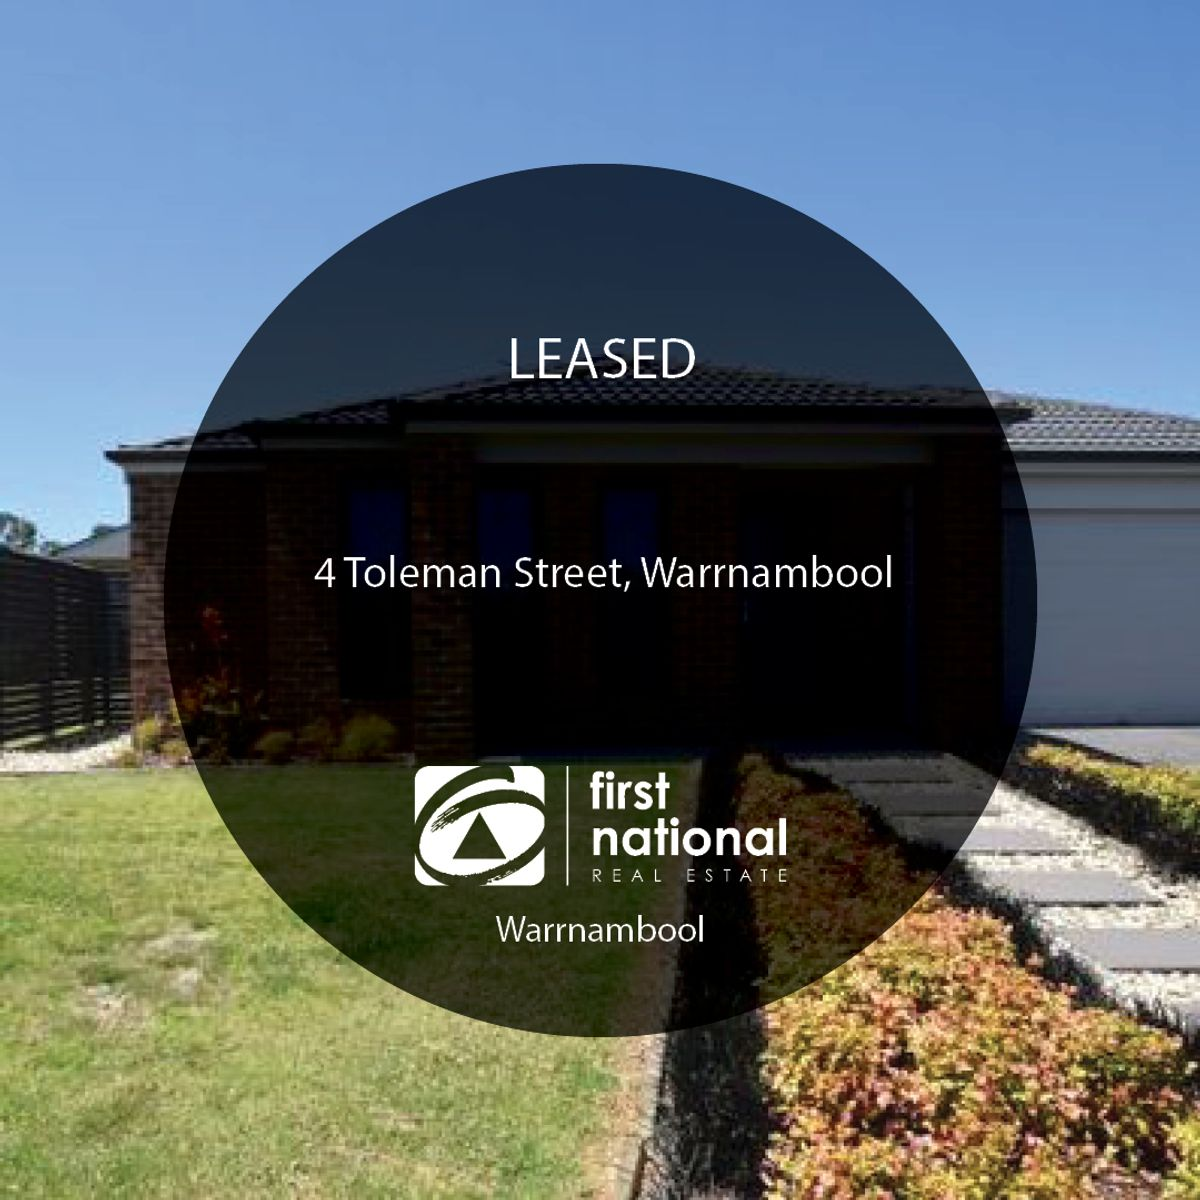 4 Toleman Street, Warrnambool, VIC 3280